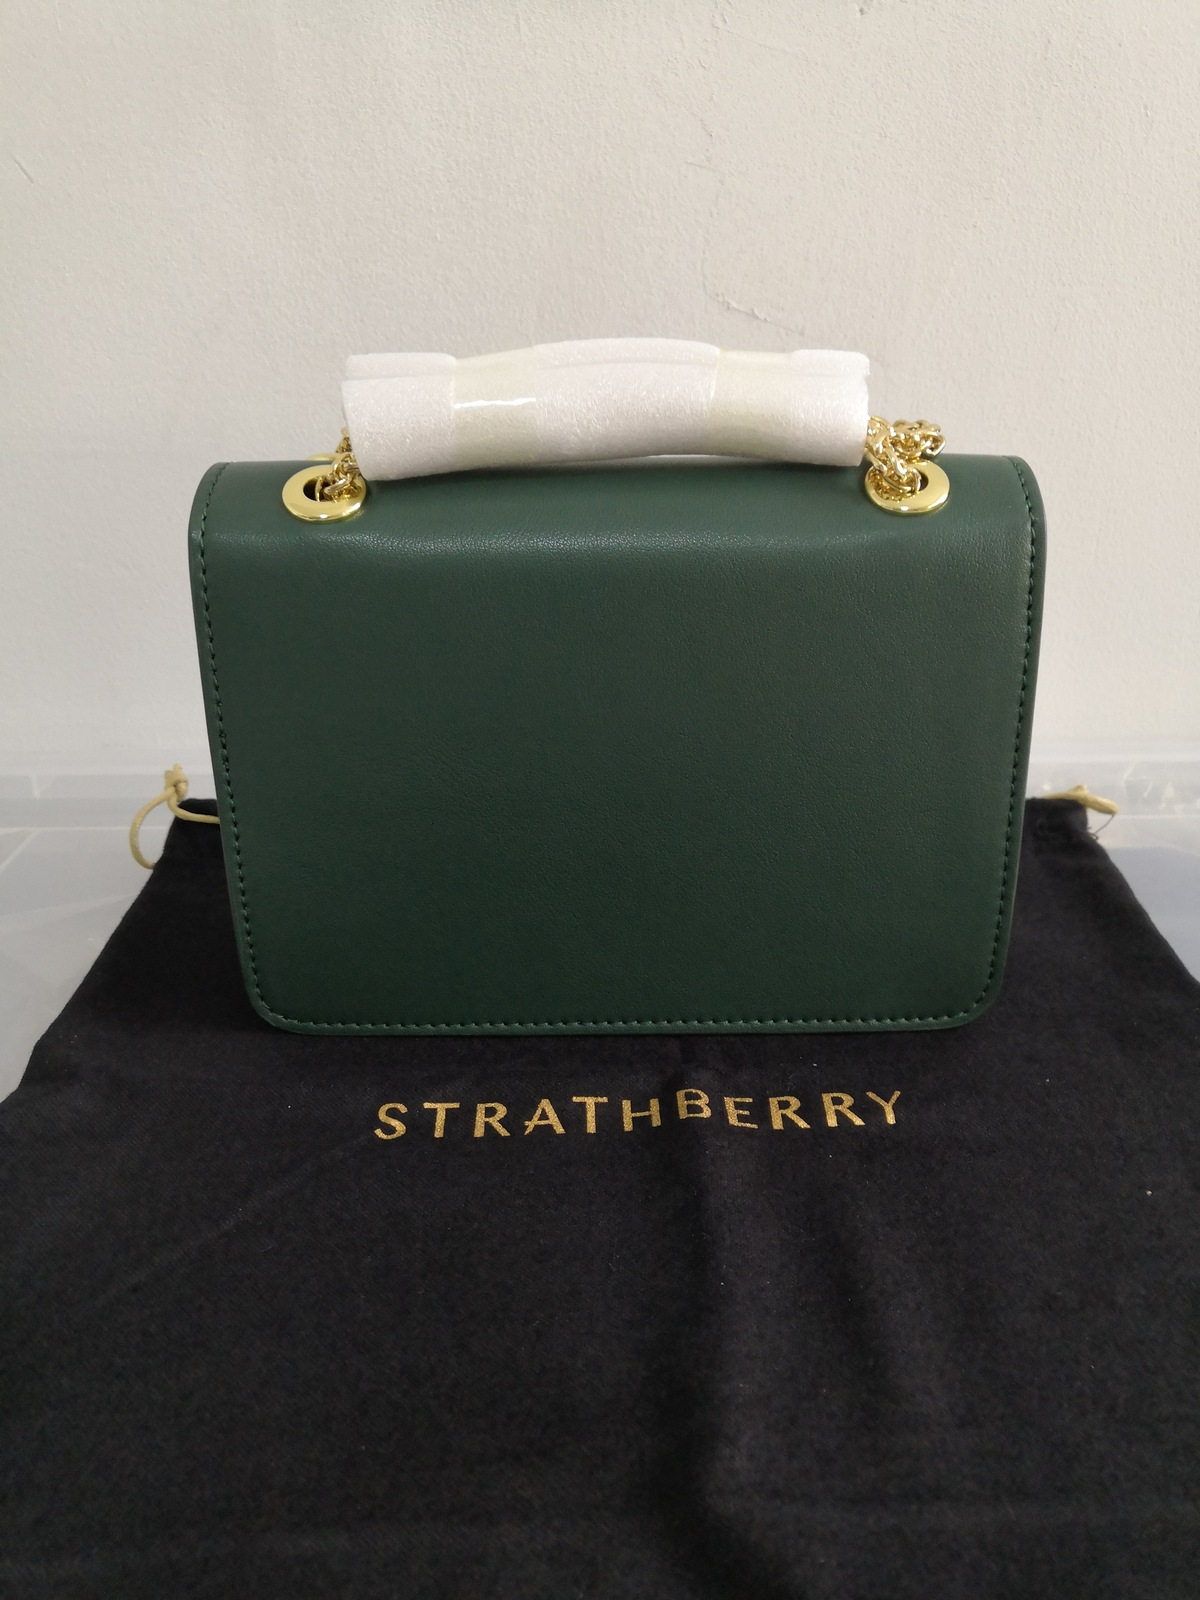 41196477272e Strathberry East west Mini Shoulder Bag and similar items